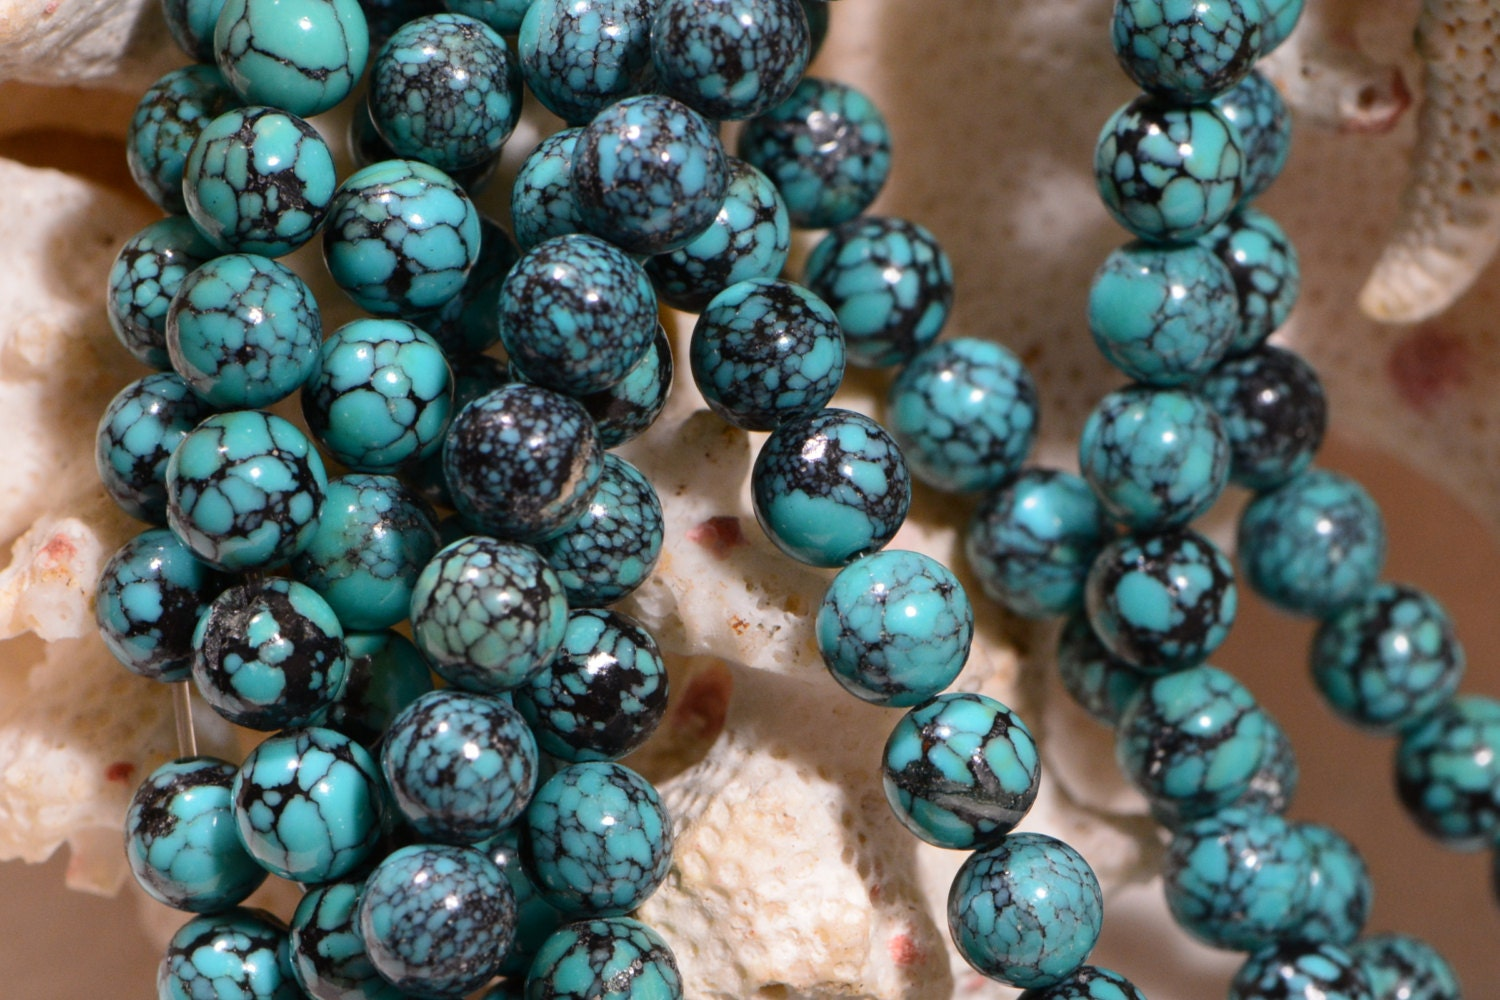 Turquoise beads 5 mm natural gemstone beads jewelry making for Birthstone beads for jewelry making